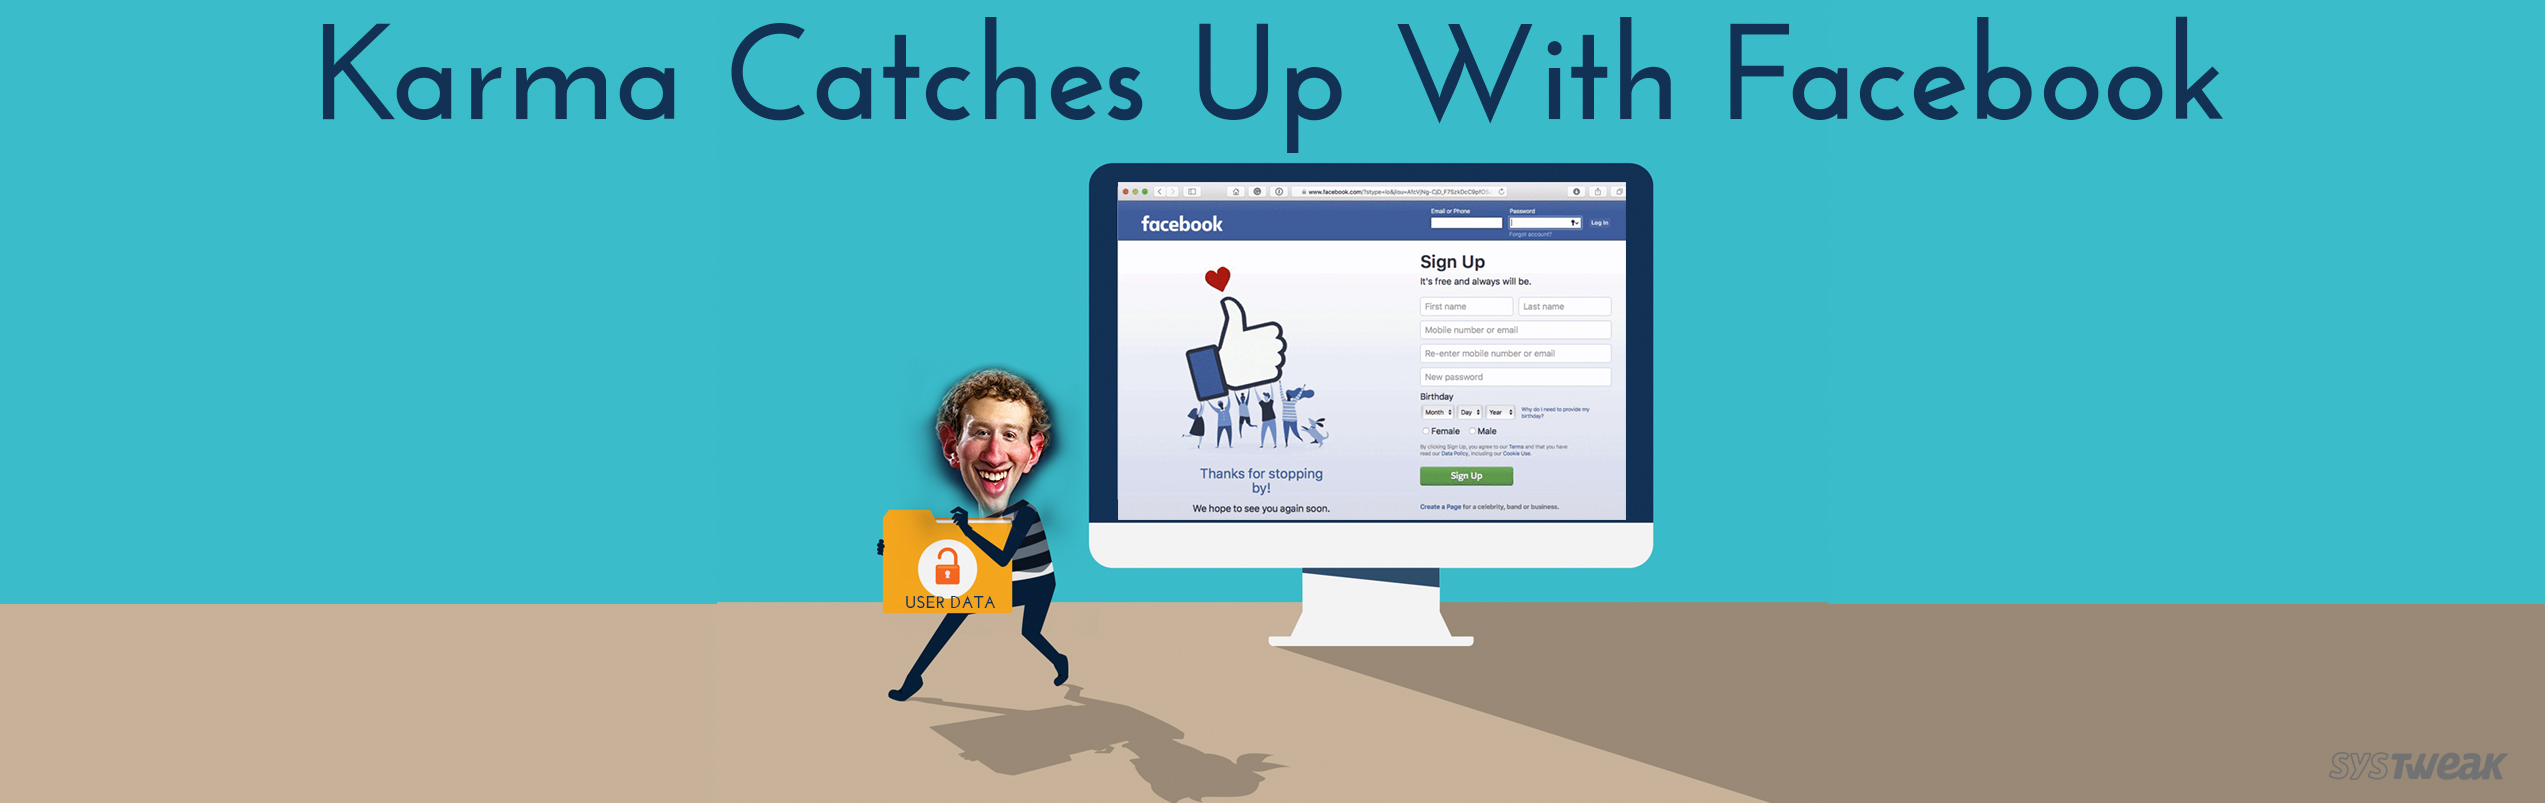 Newsletter: Is It End of Days for Facebook?